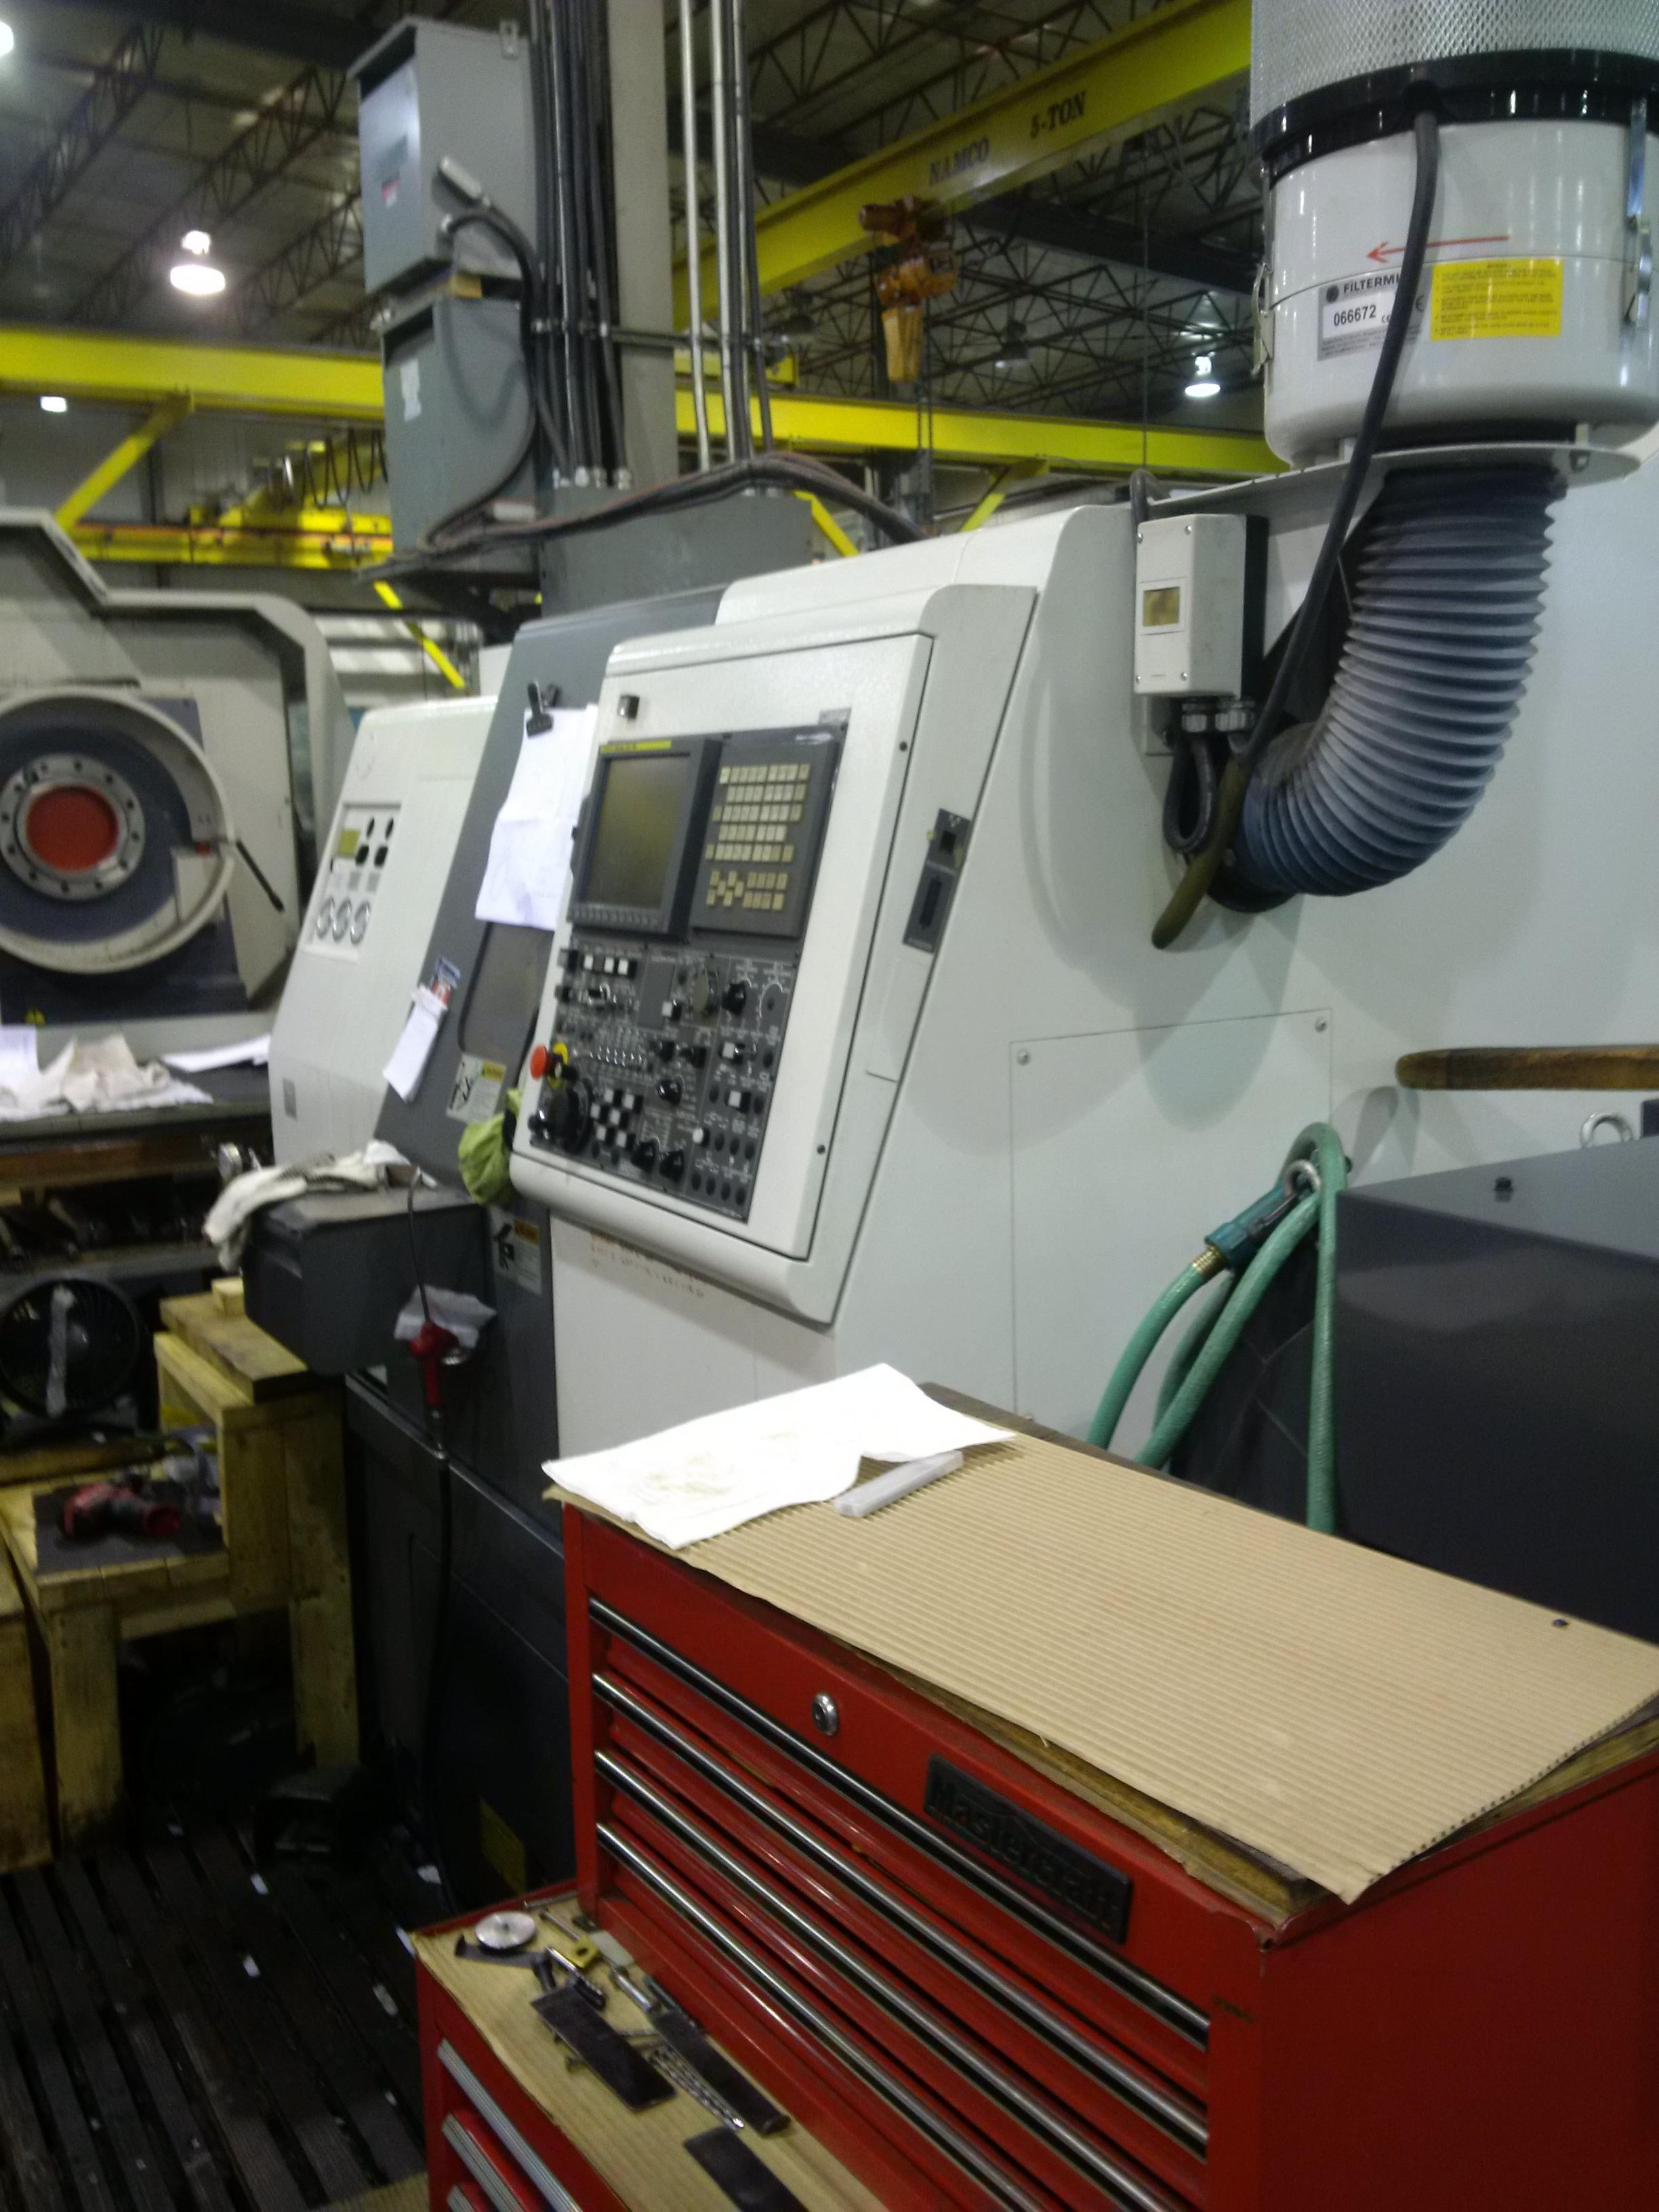 "Nakamura Tome SC200LY CNC Lathe, Fanuc 21iTB Control, 8"" Chuck, 20.8"" Centers, 2.5"" Bar Capacity, Milling, 12 Position Turret, Parts Catcher, Box Way Design, Chip Conveyor, 2012"